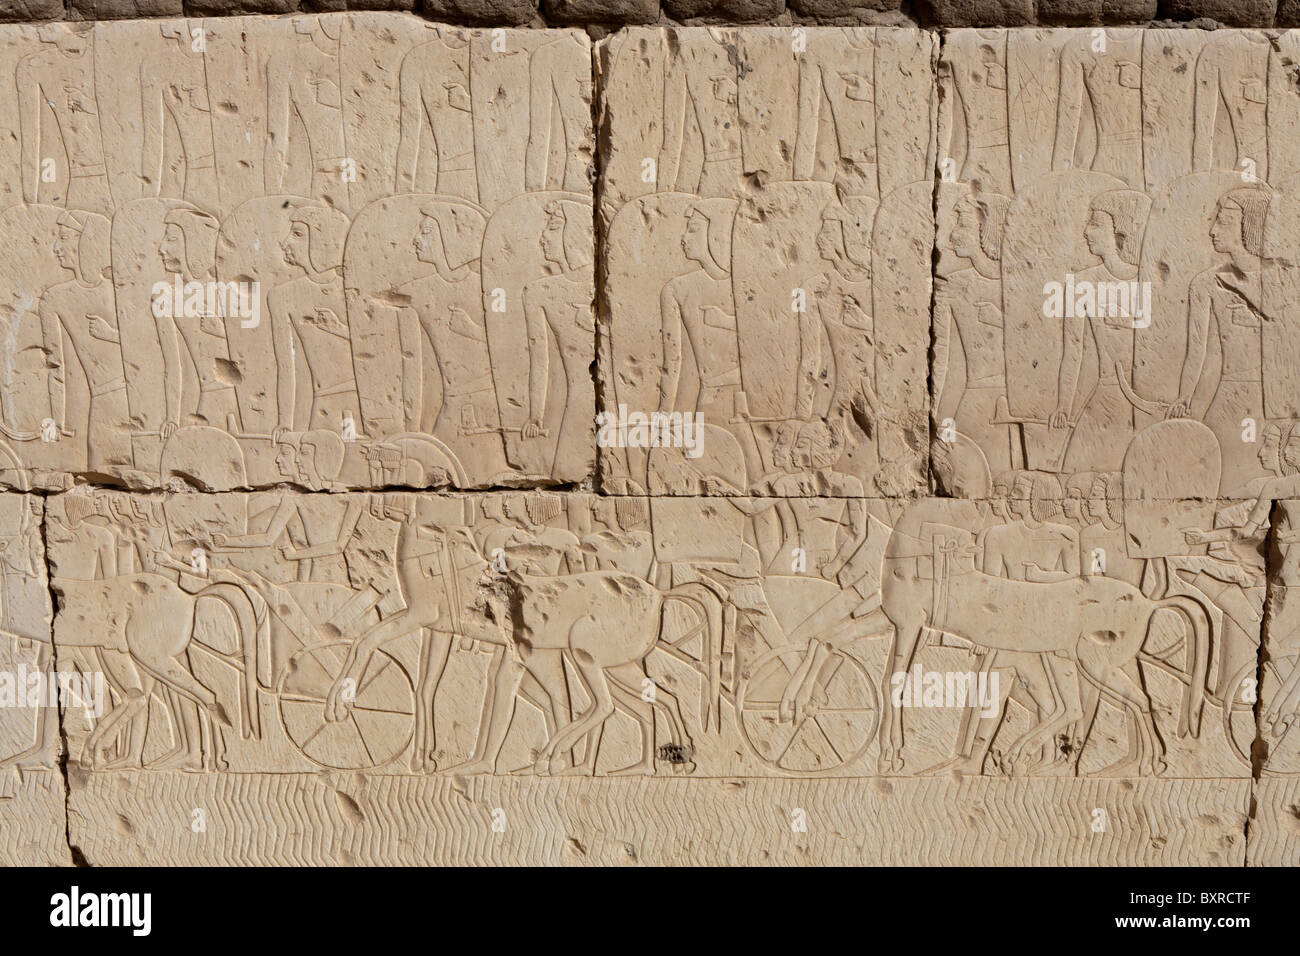 Reliefs of the Battle of Kadesh on the outer walls of the Temple of Ramesses II at Abydos, Nile Valley Egypt - Stock Image